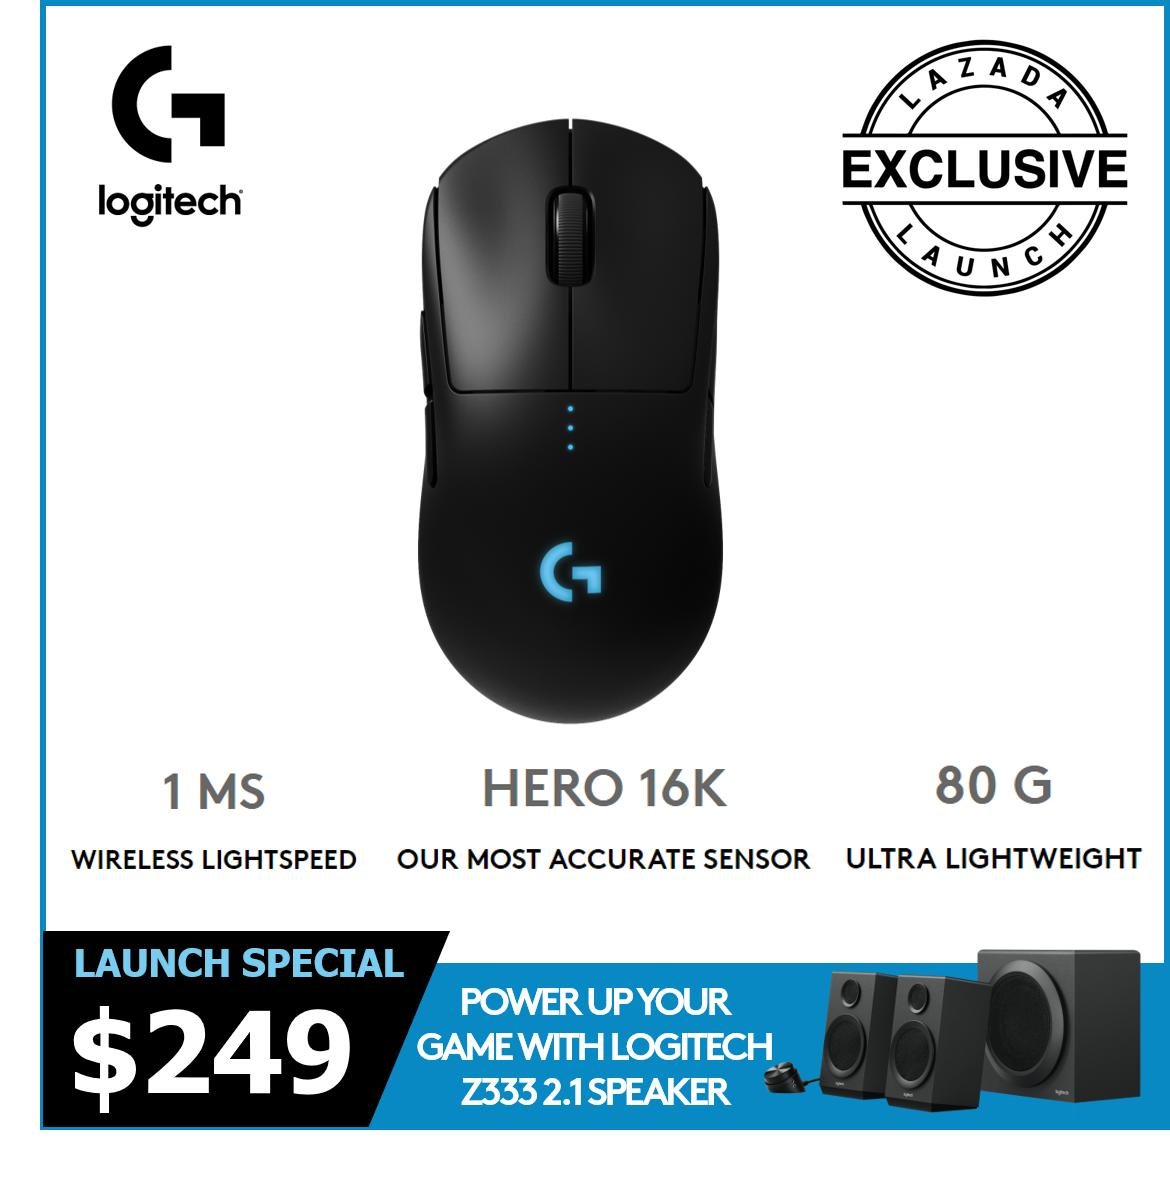 [Launch Special] Logitech G Pro HERO Wireless Mouse with free Logitech Z333 PC speaker